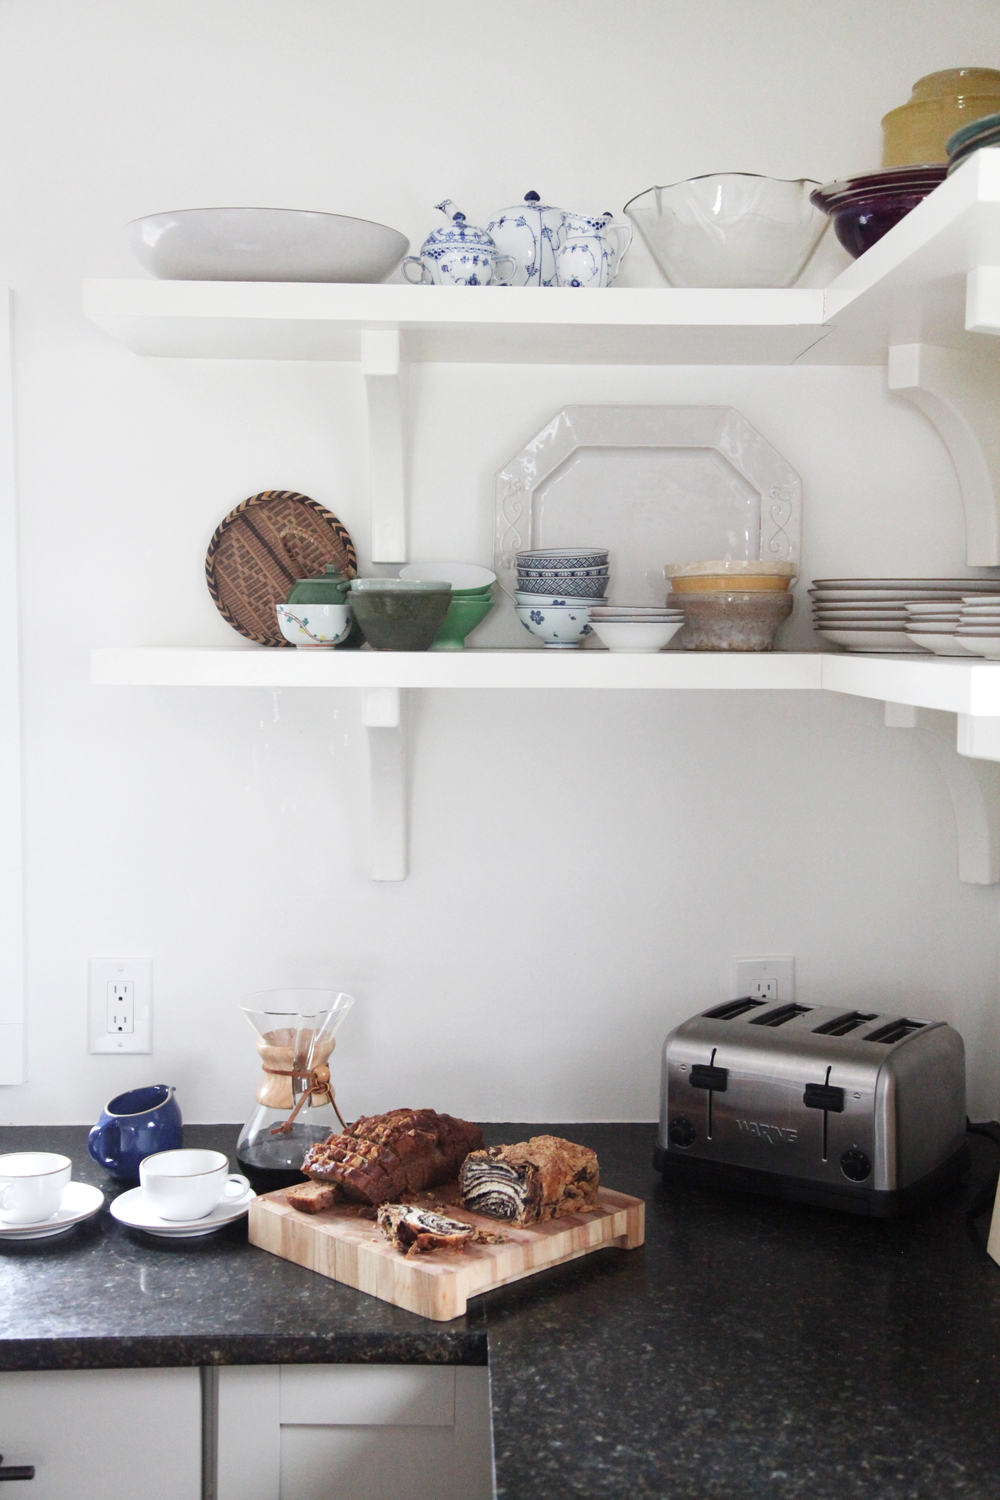 Tidy vintage dish stacks on exposed shelving.